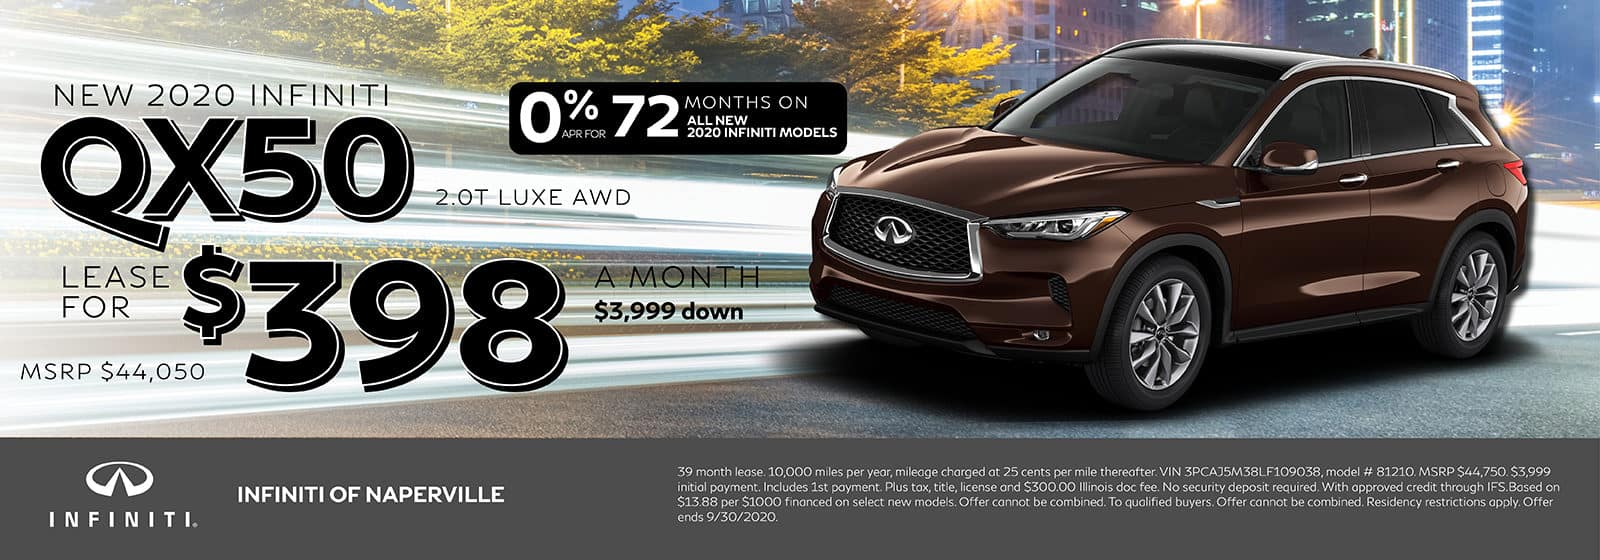 2020 INFINITI QX50 lease offer, $398/mo for 72 Months | Naperville, IL